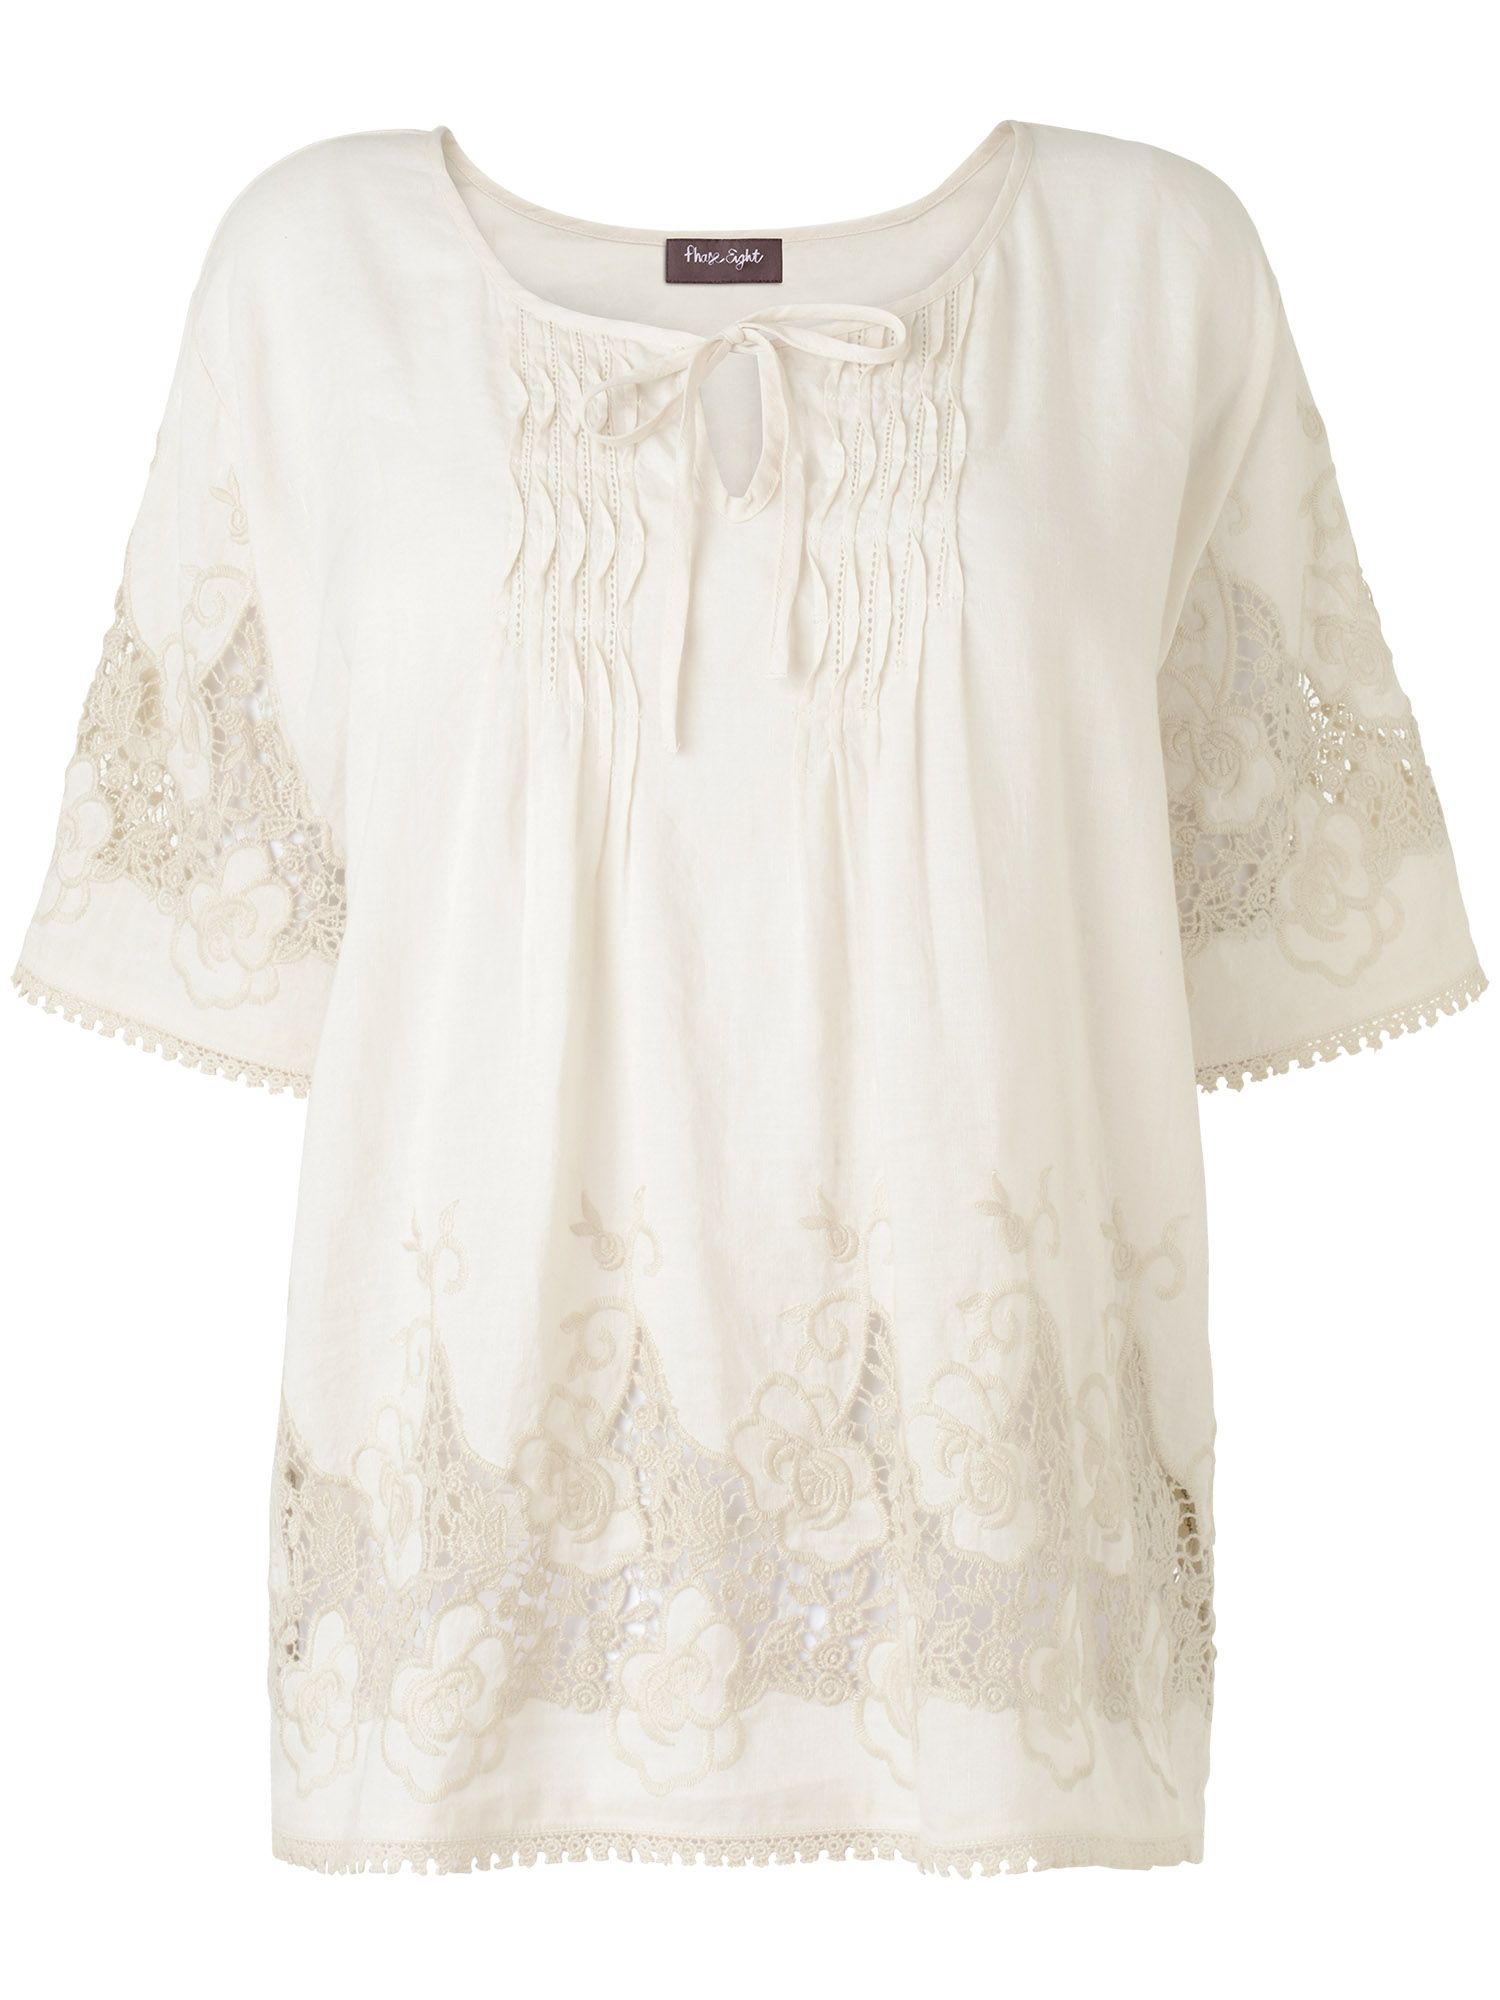 Ingrid embroidered blouse